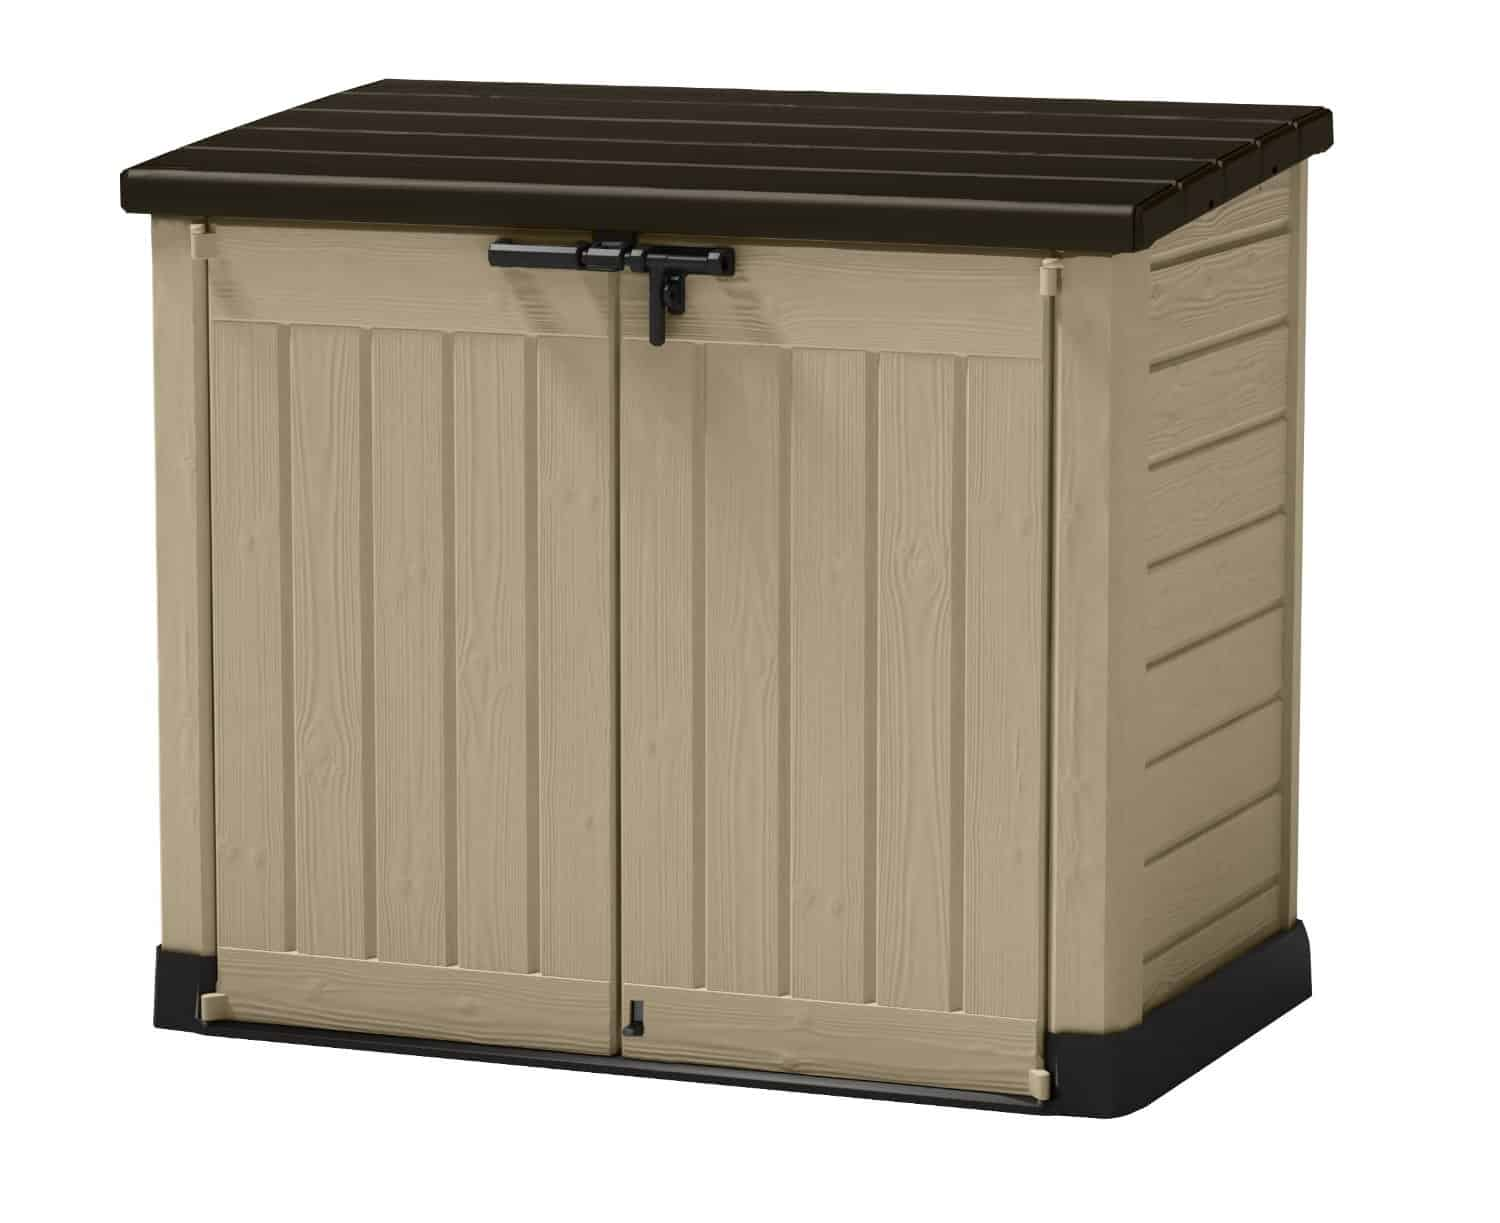 Keter Store It Out MAX Outdoor Garbage Shed